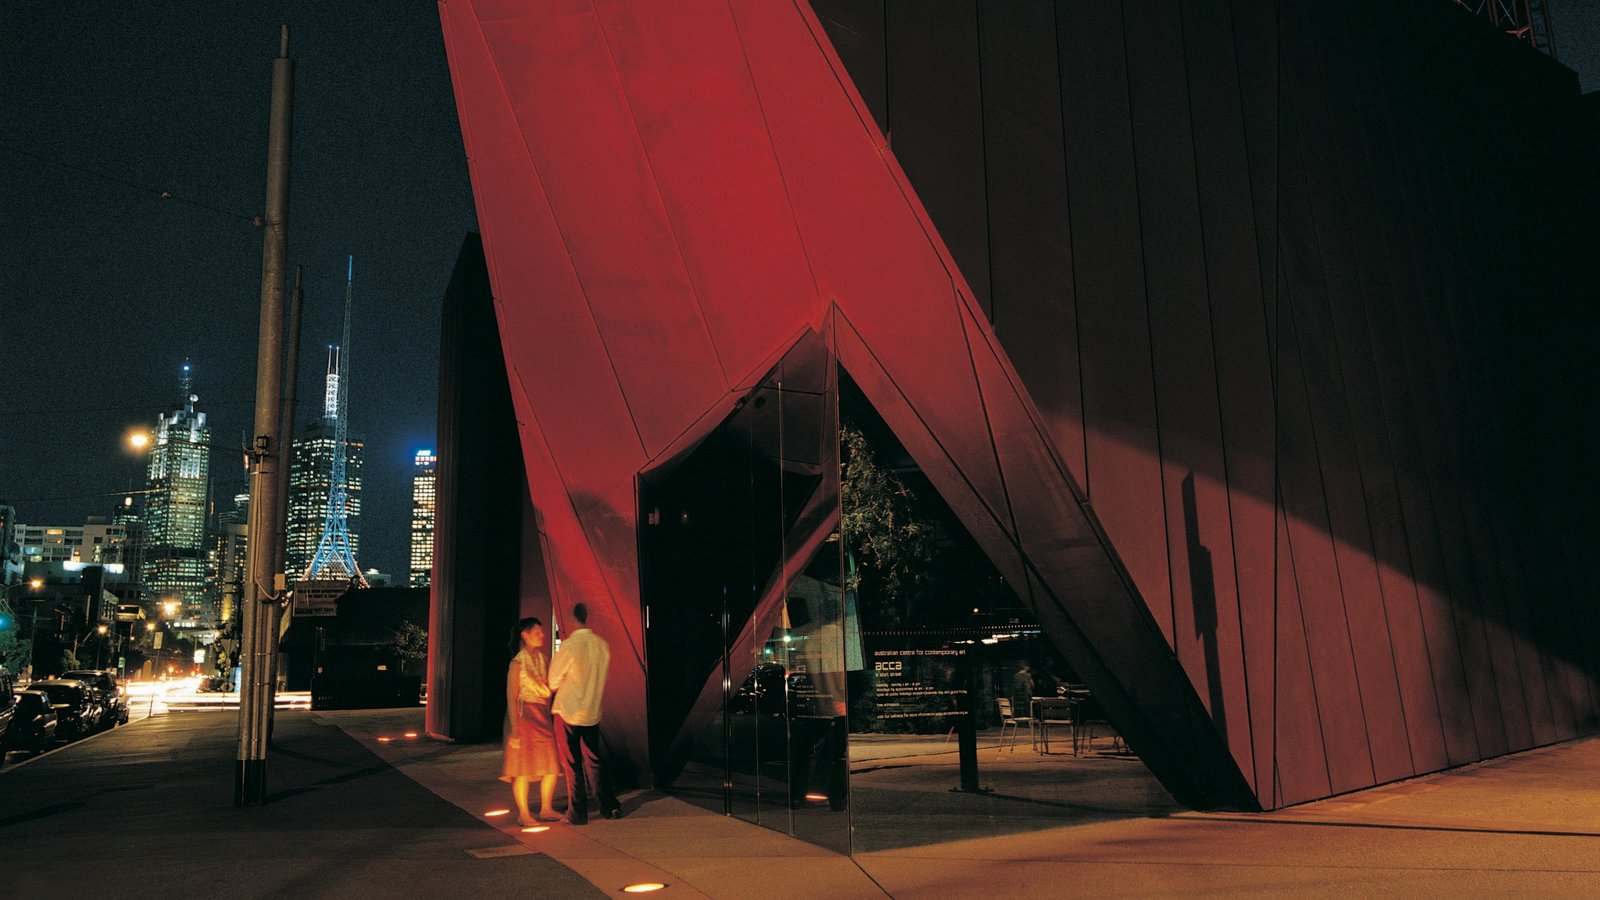 Australian Centre for Contemporary Art featuring night scenes, a city and street scenes